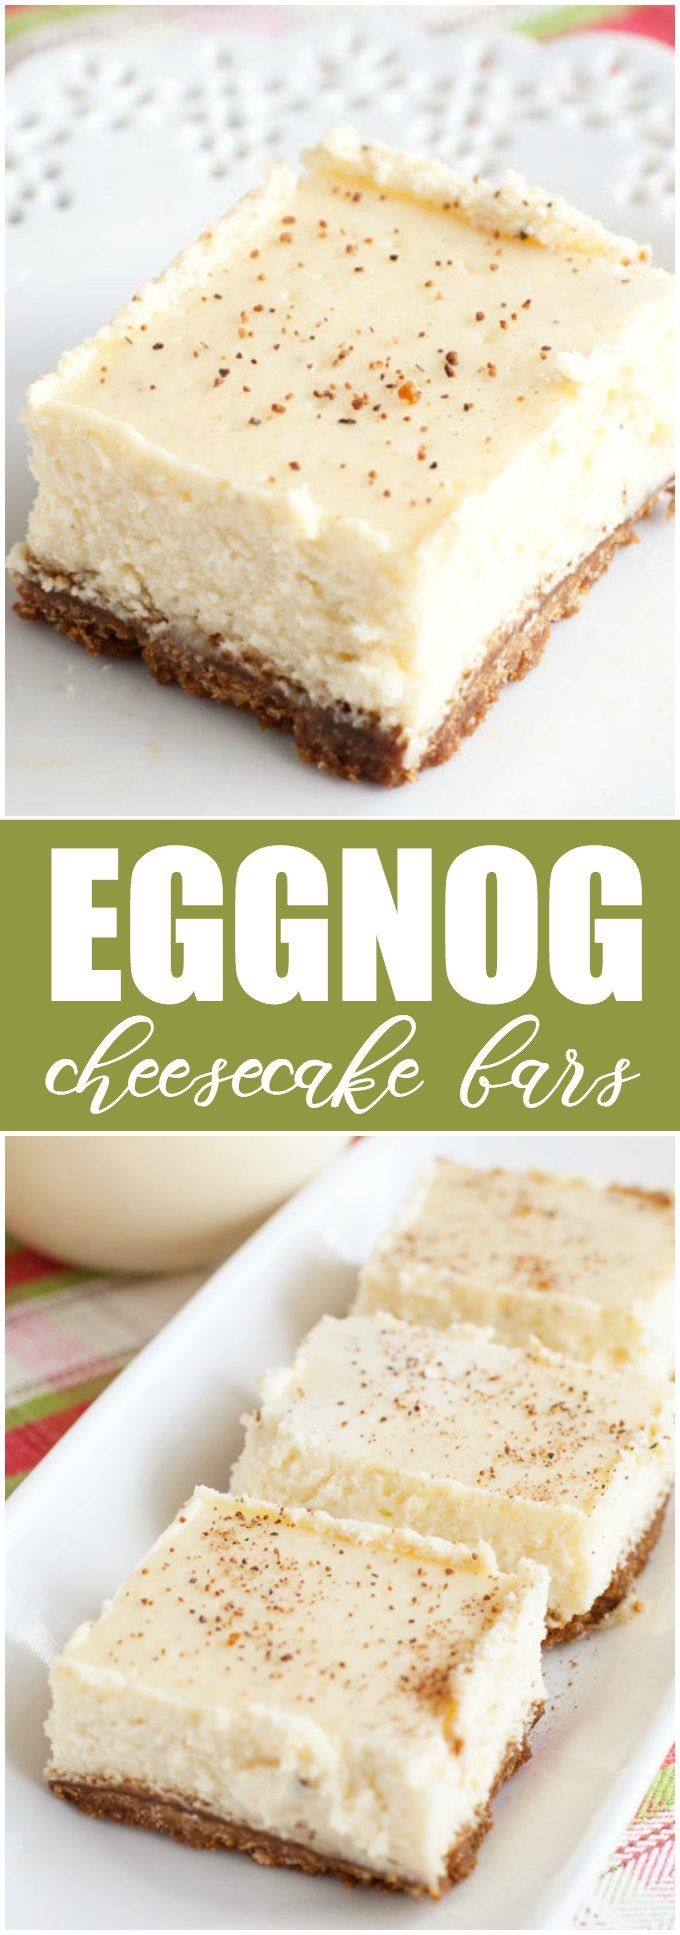 Eggnog Cheesecake Bars - Creamy rich eggnog cheesecake with a spicy gingersnap cookie crust.